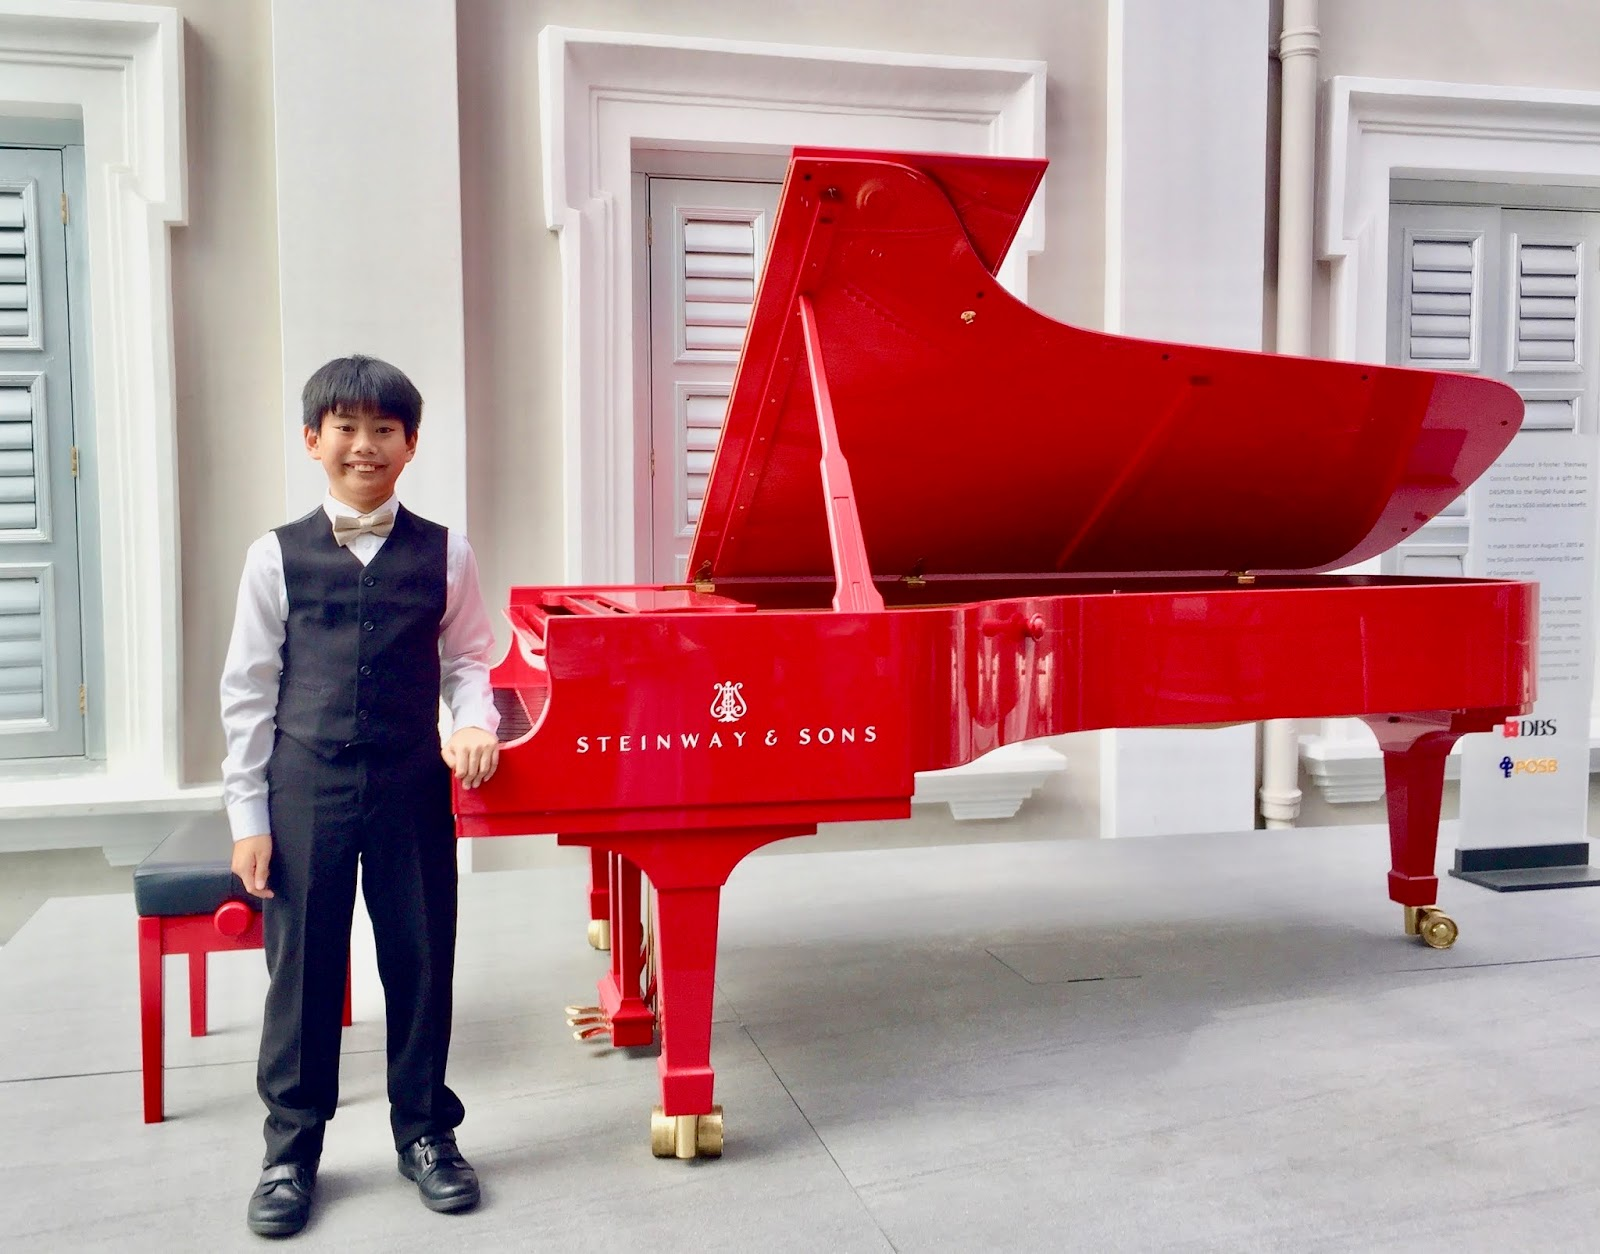 Lucas Chang Diep | 3rd Prize | Piano | 6th Edition | ENKOR Int'l